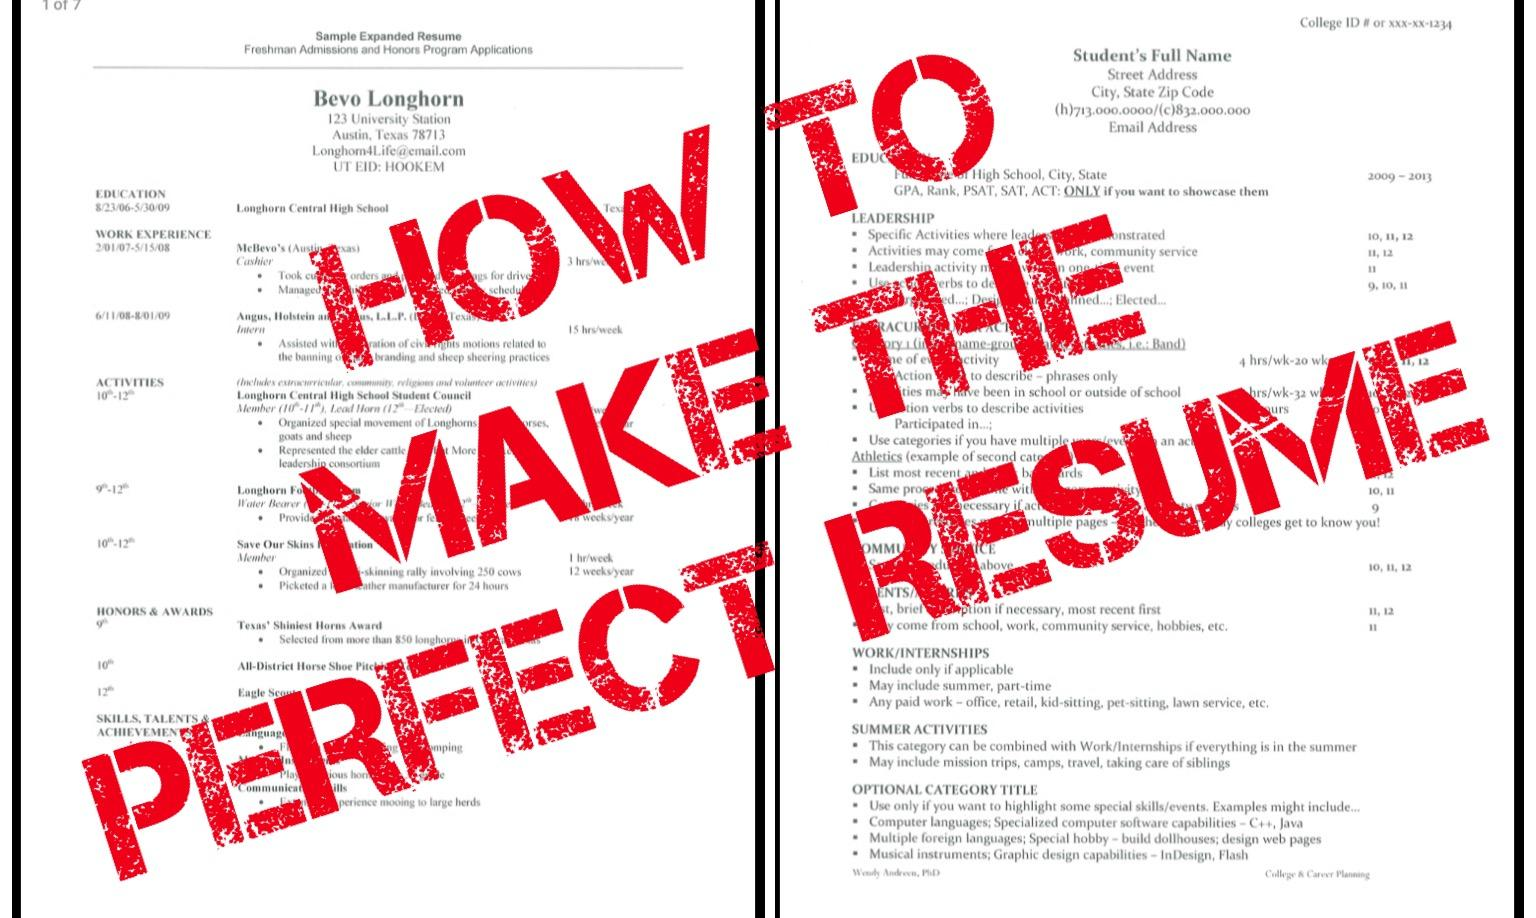 a resume is nothing more than a little insight to what you have to offer